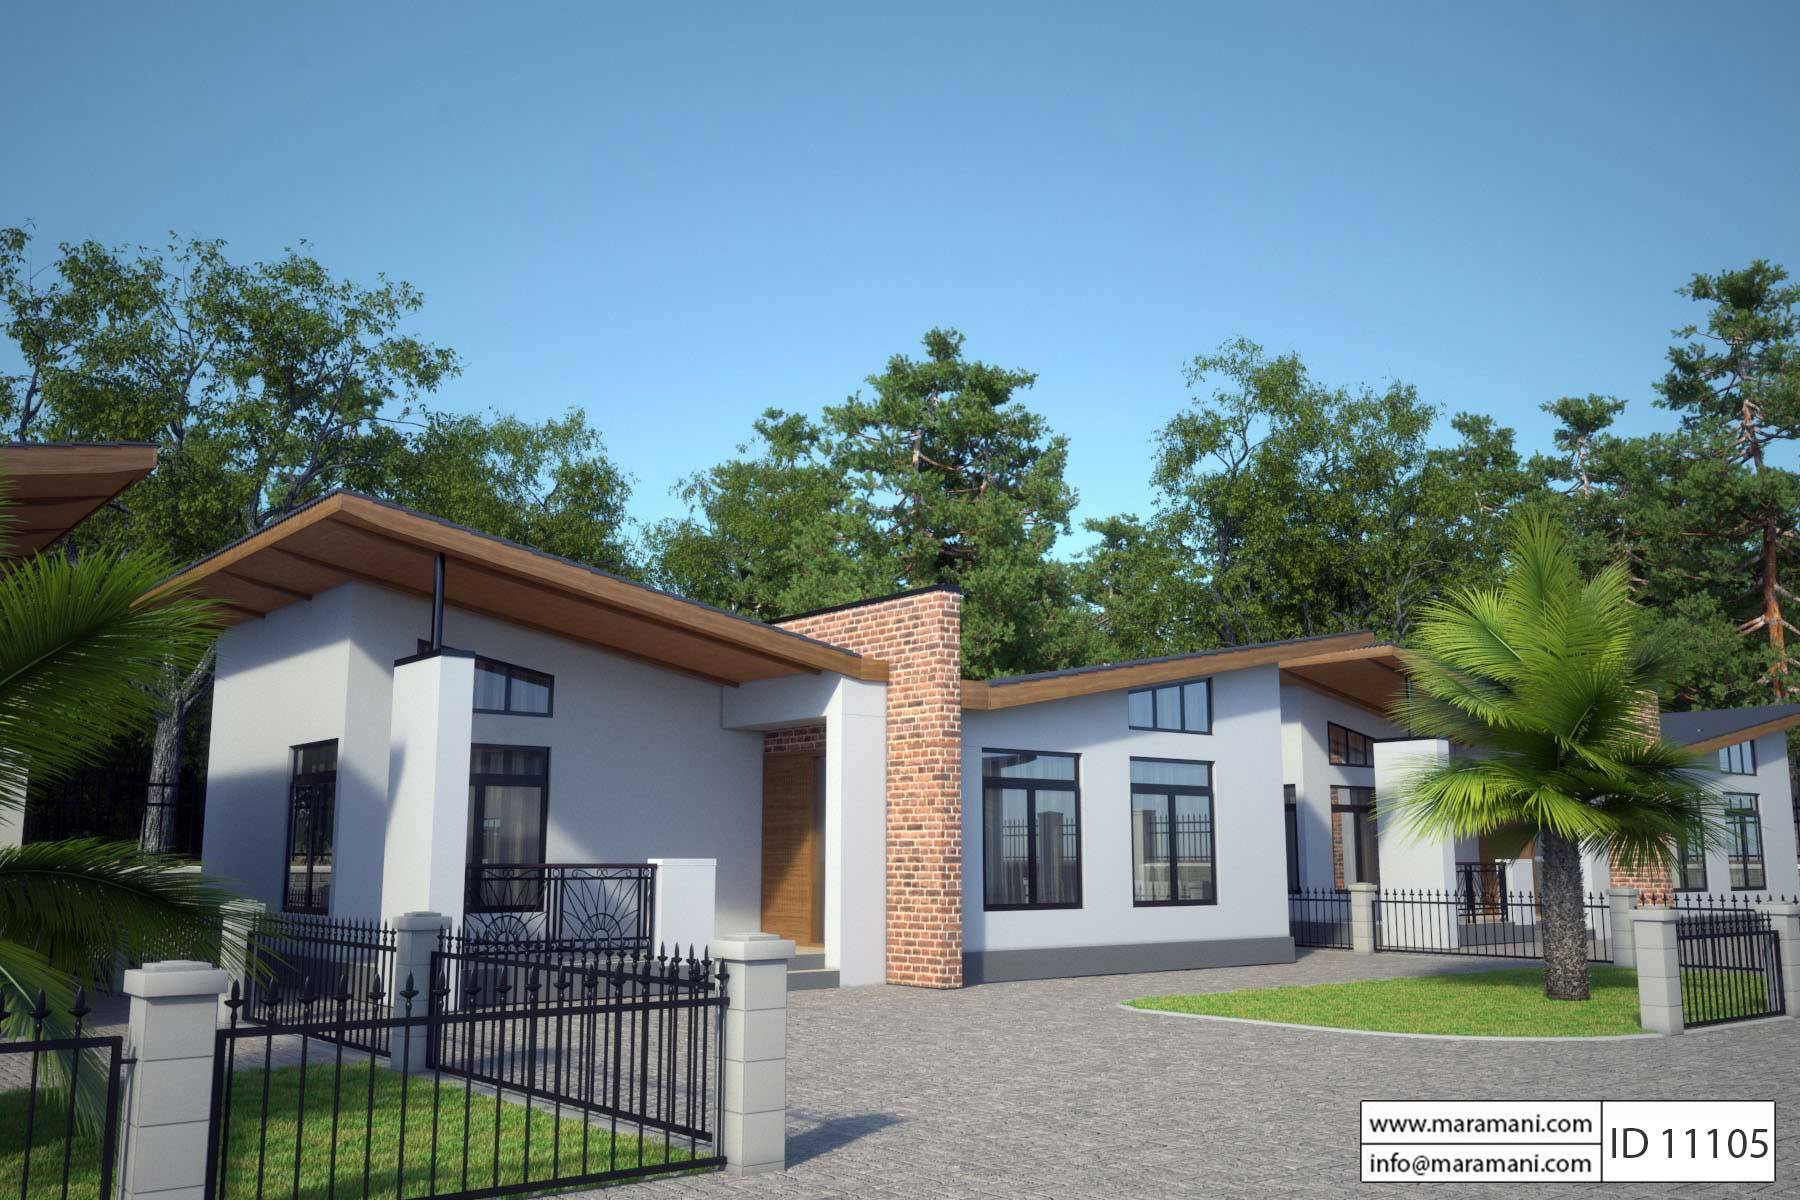 1 Bedroom House Plan   ID 11105